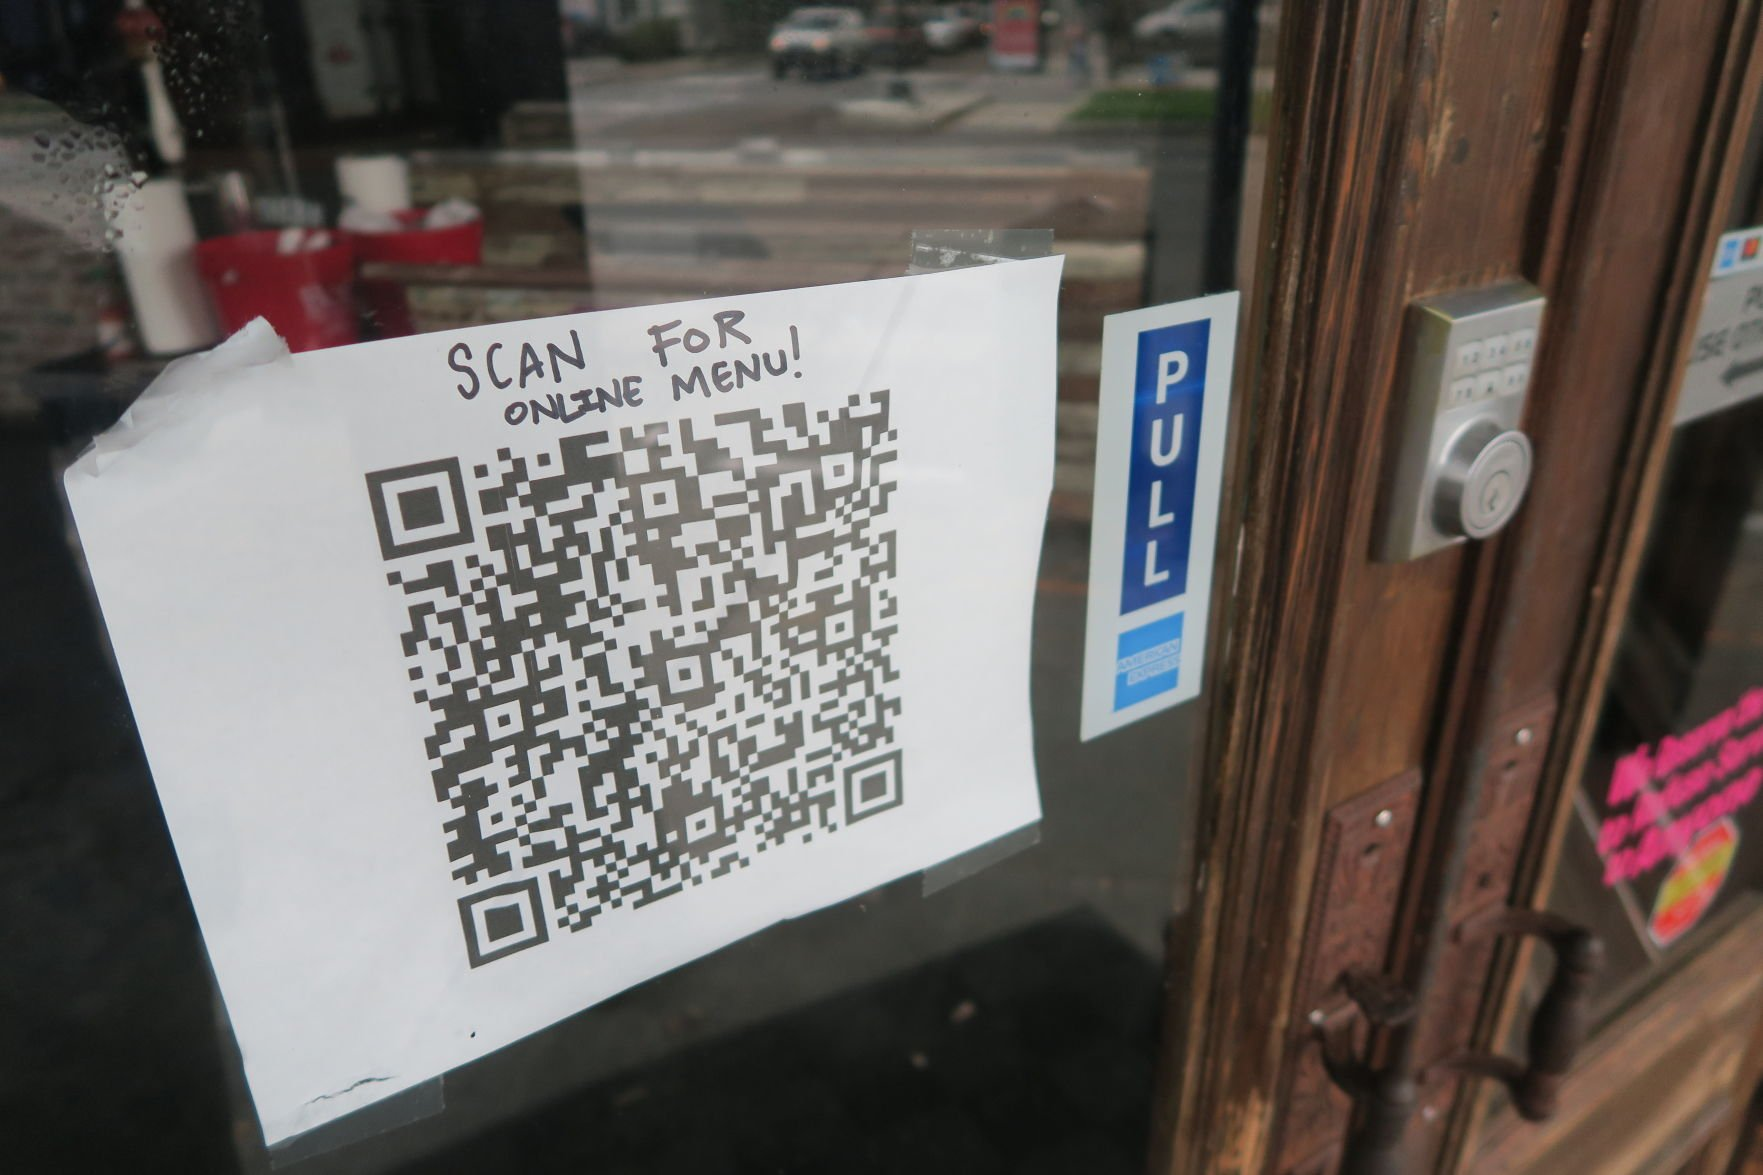 New Orleans Restaurants Serve Up Qr Codes For No Touch Menus In Coronavirus Reopenings Coronavirus Nola Com